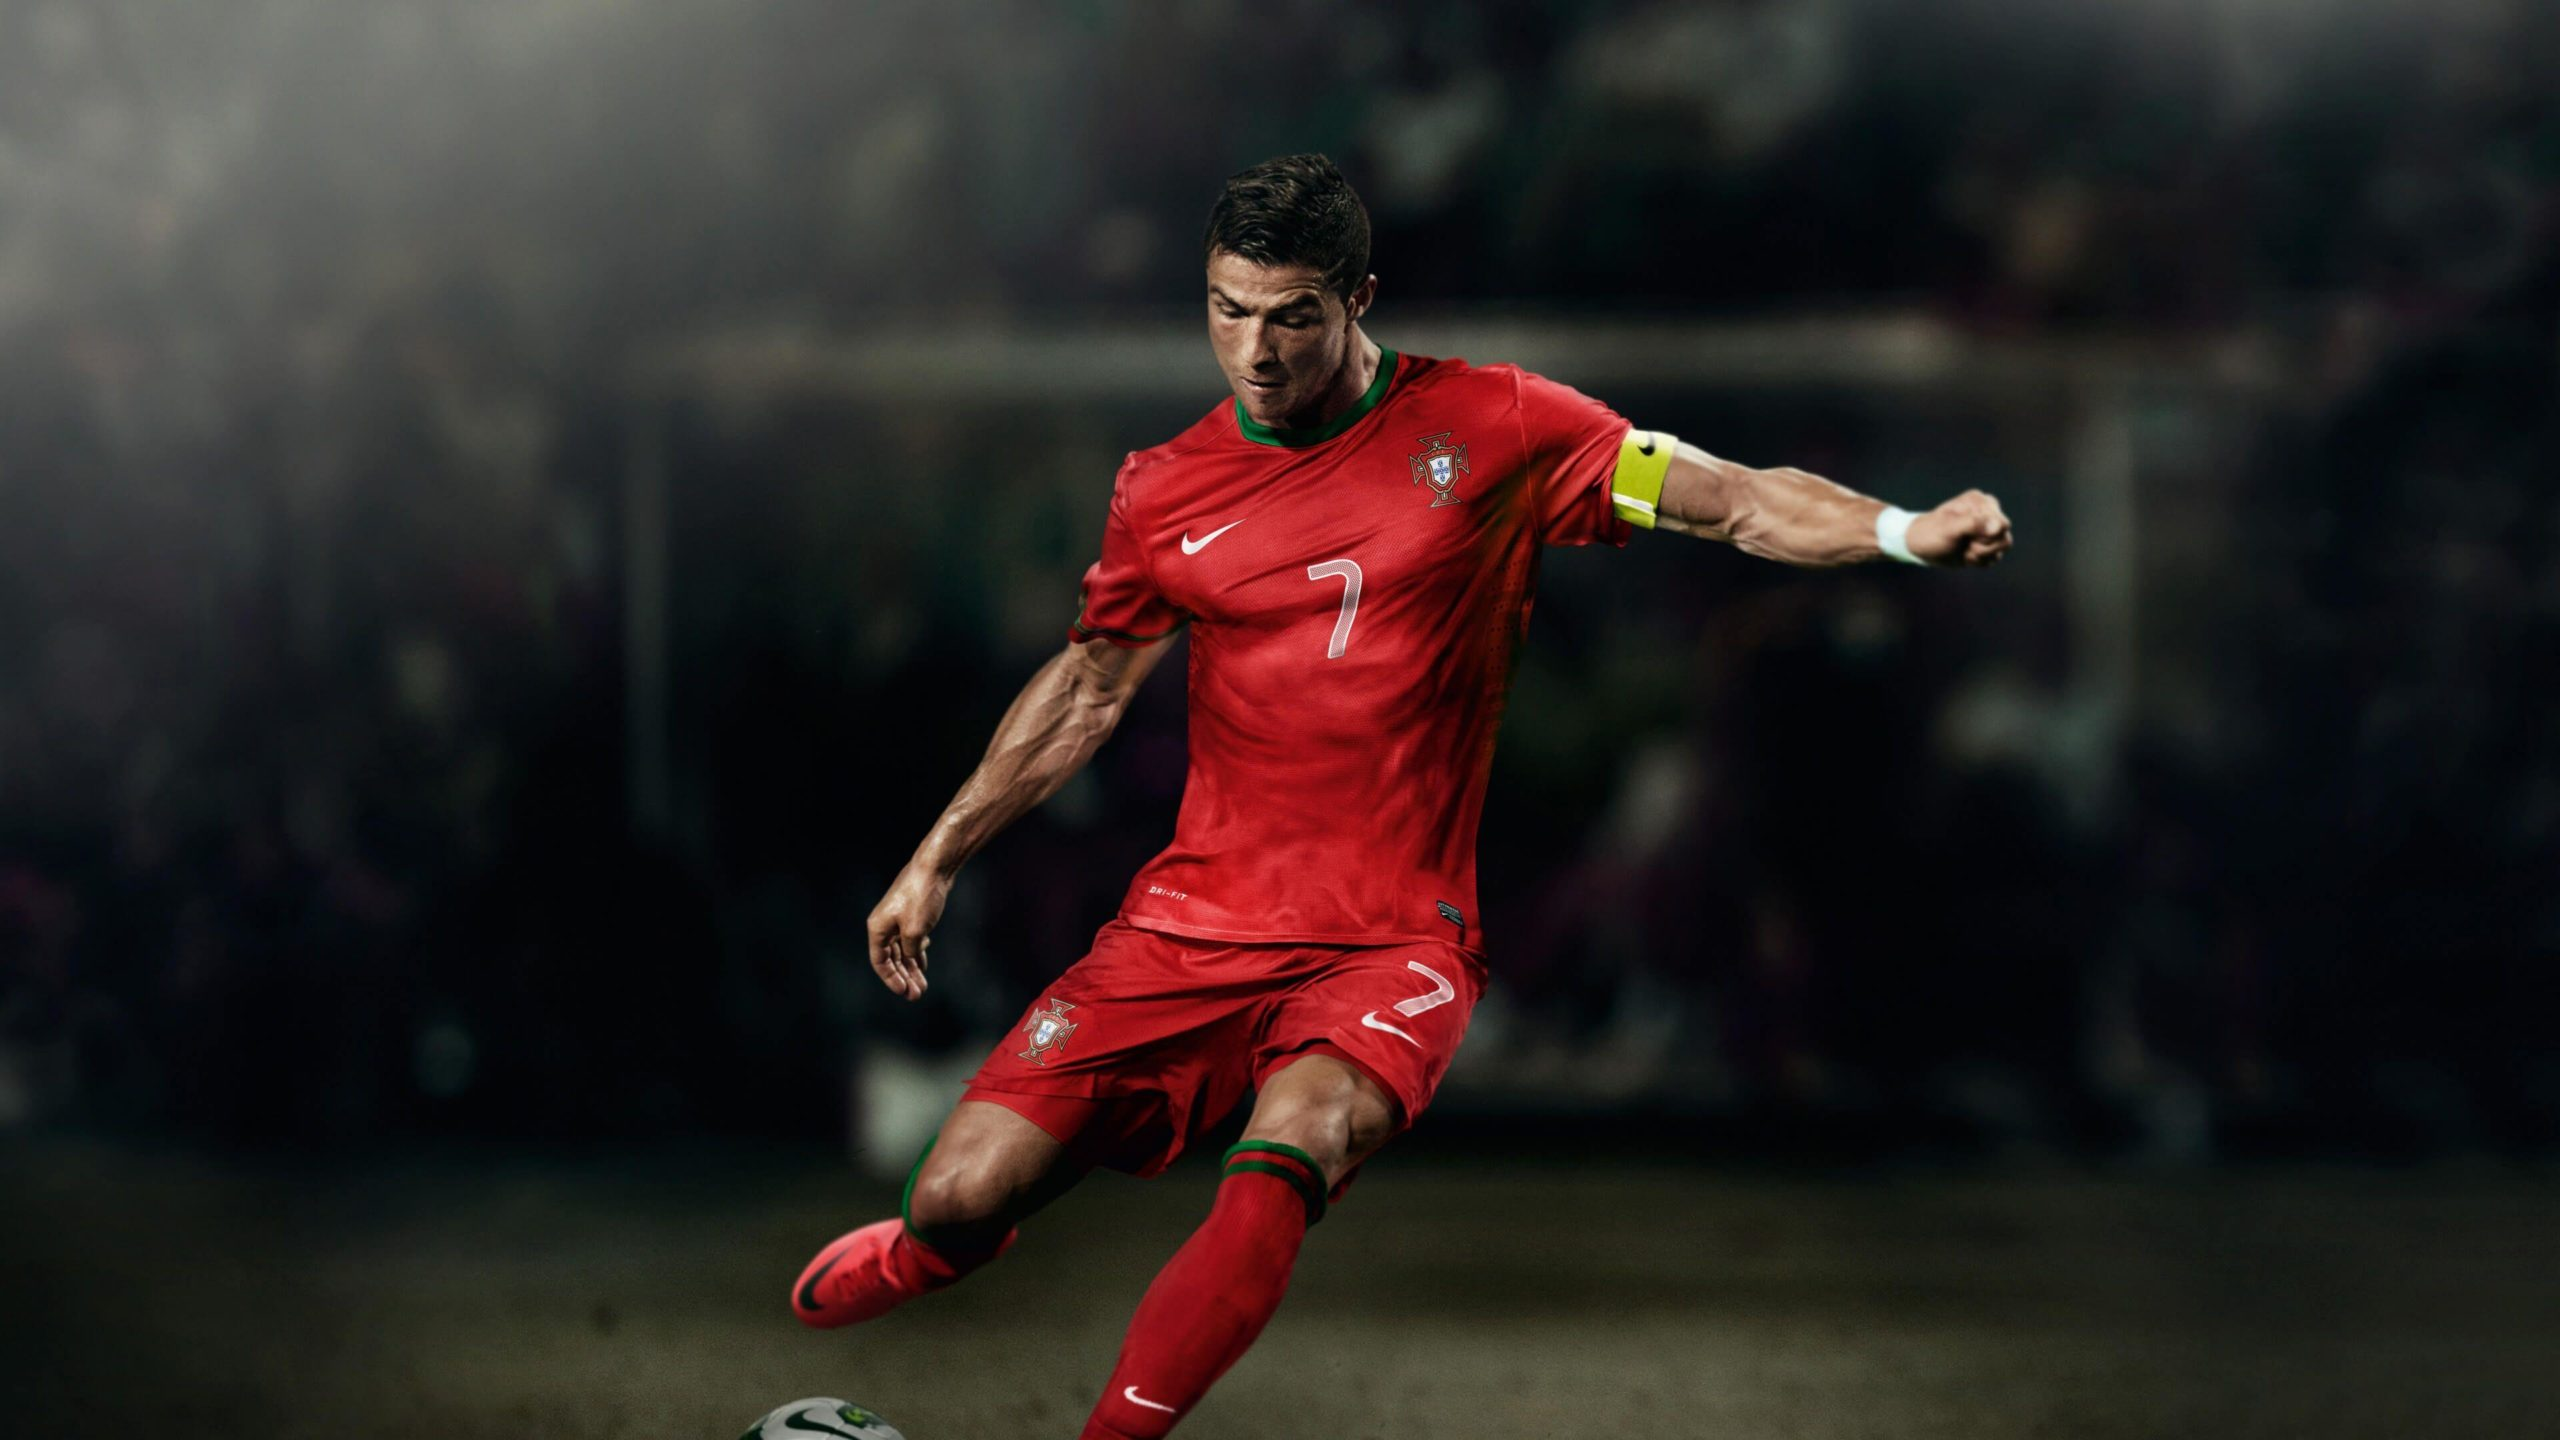 Football Stars Wallpapers